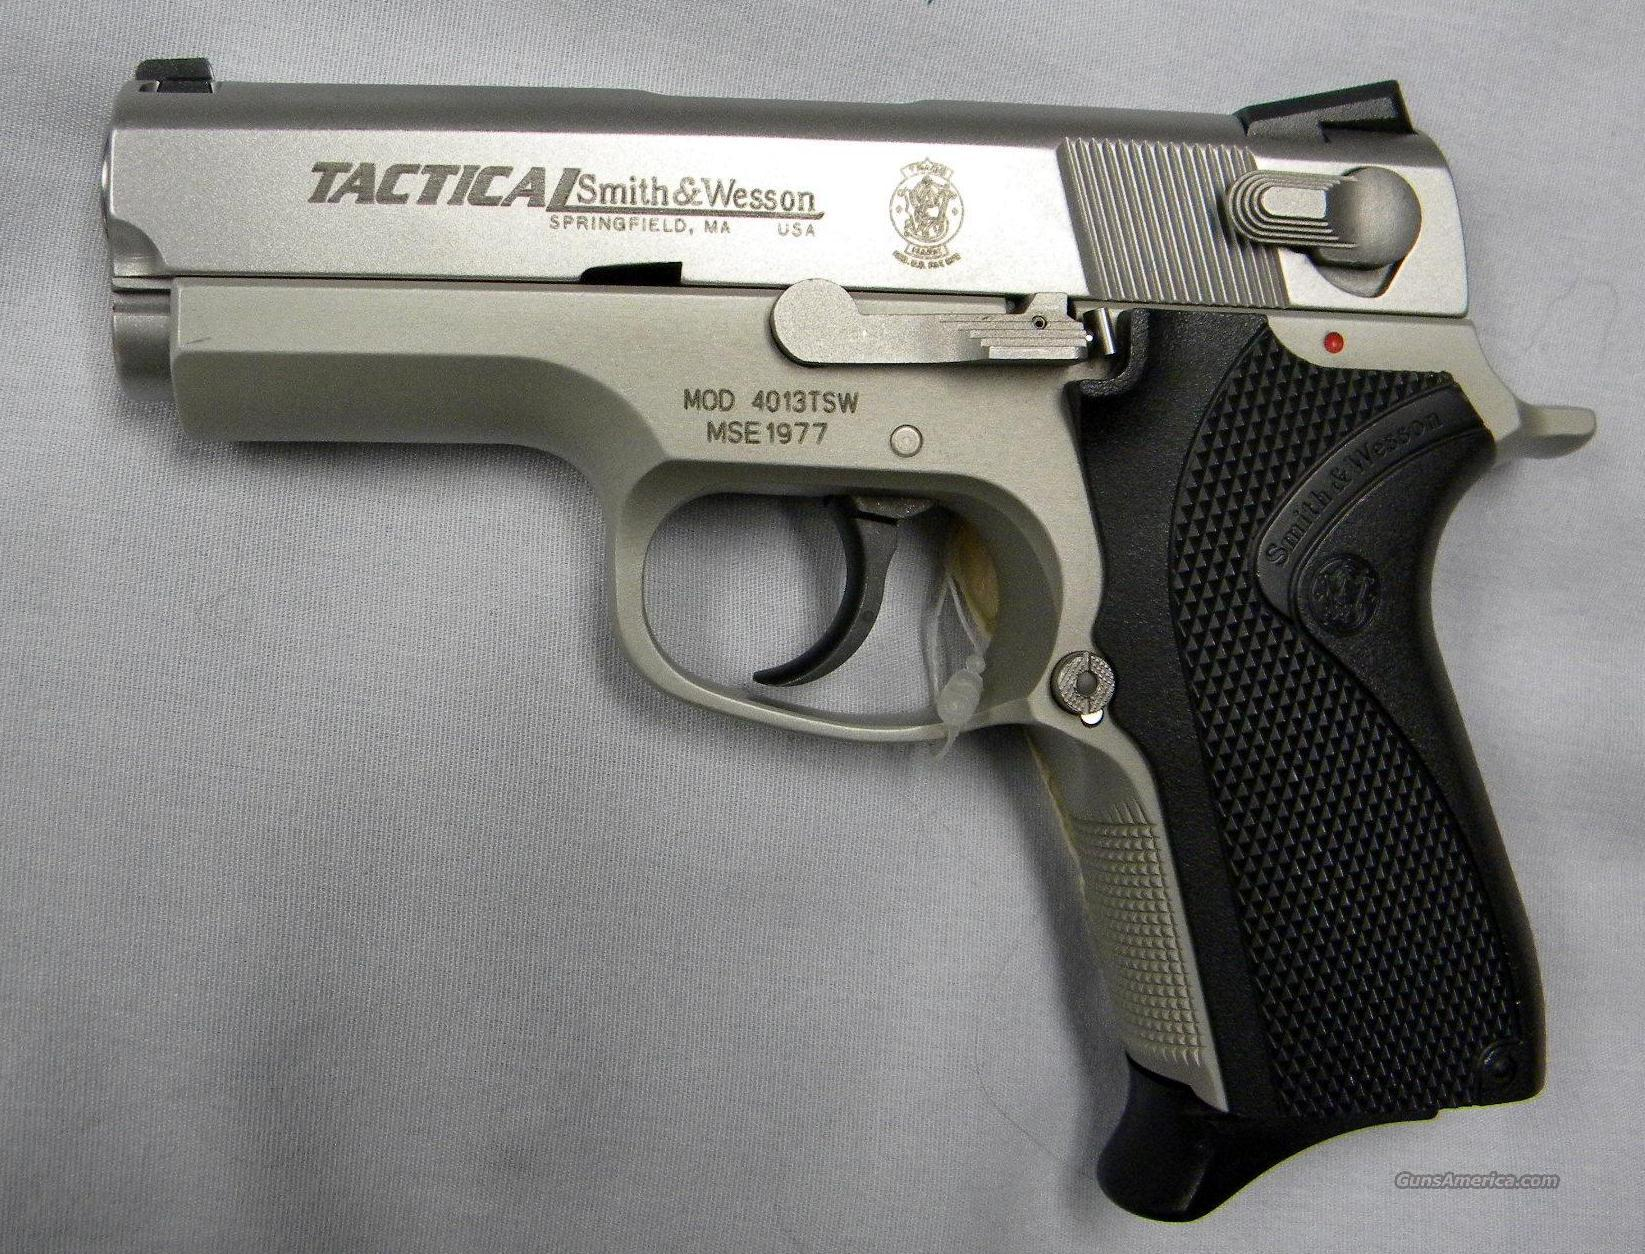 Smith and Wesson 4013 TSW .40 Cal.  Guns > Pistols > Smith & Wesson Pistols - Autos > Steel Frame